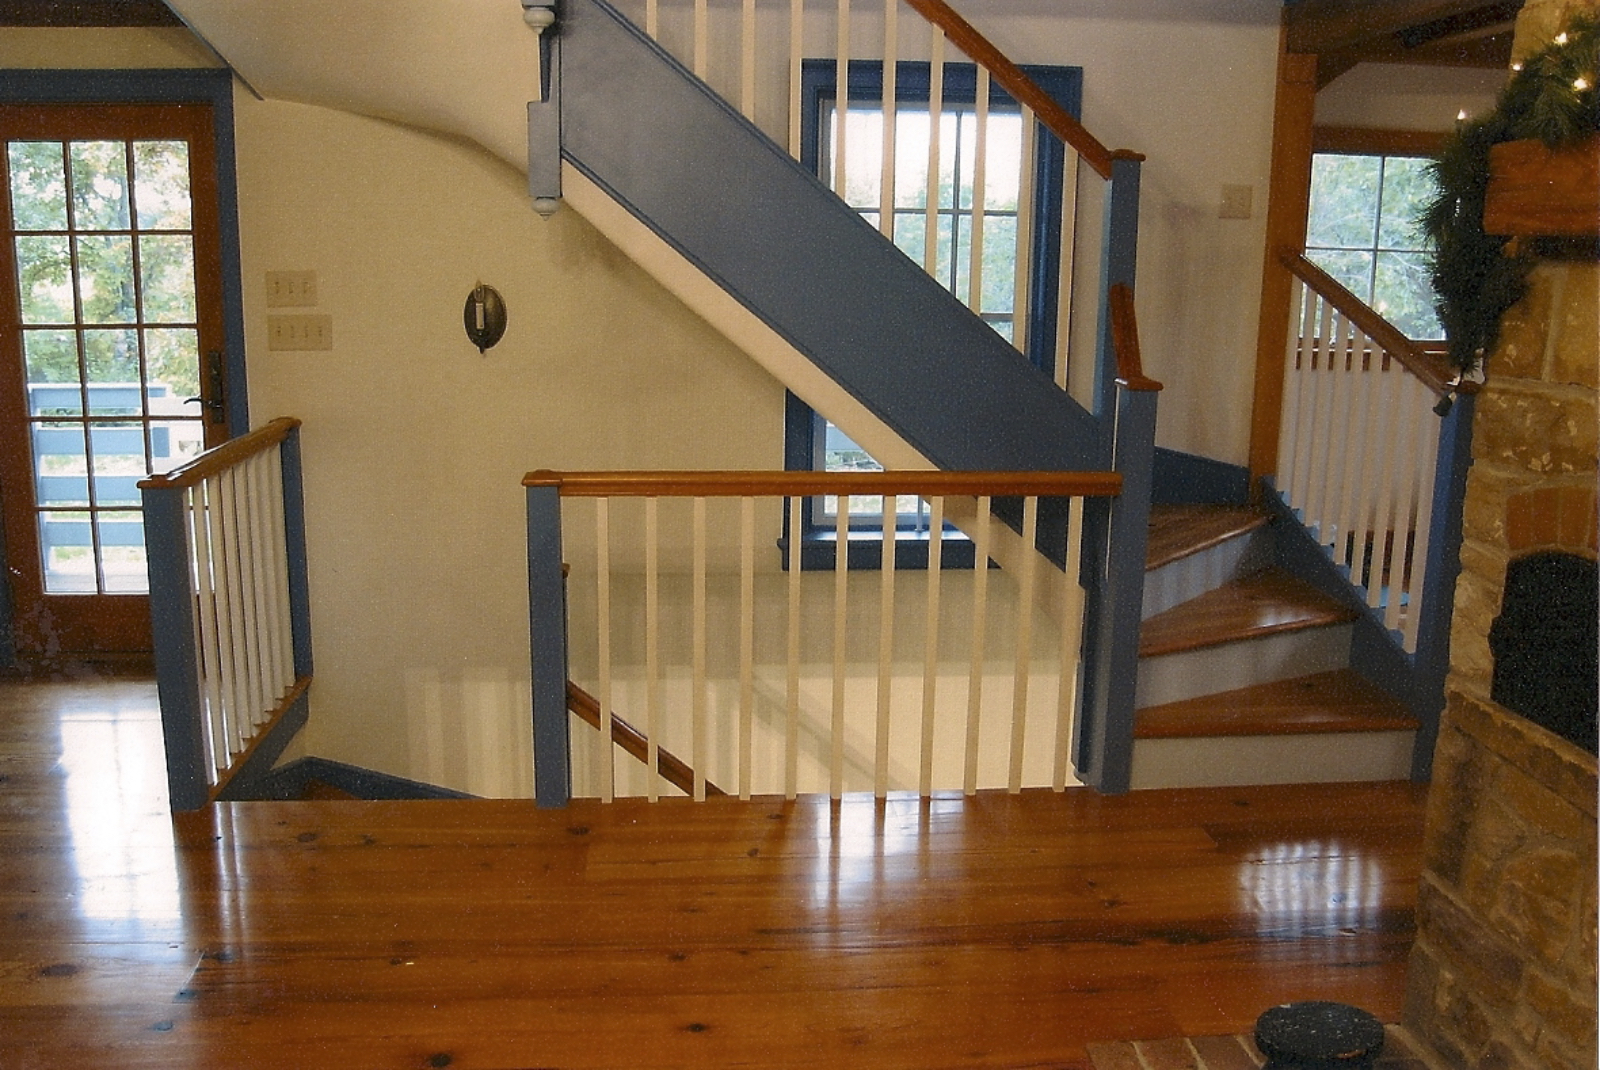 Stairway_Stairs_Staircase_Interior_Millwork_Craftsmanship_New_Holland_Lancaster_PA_Woodworking_Greenbank_Millwork_038